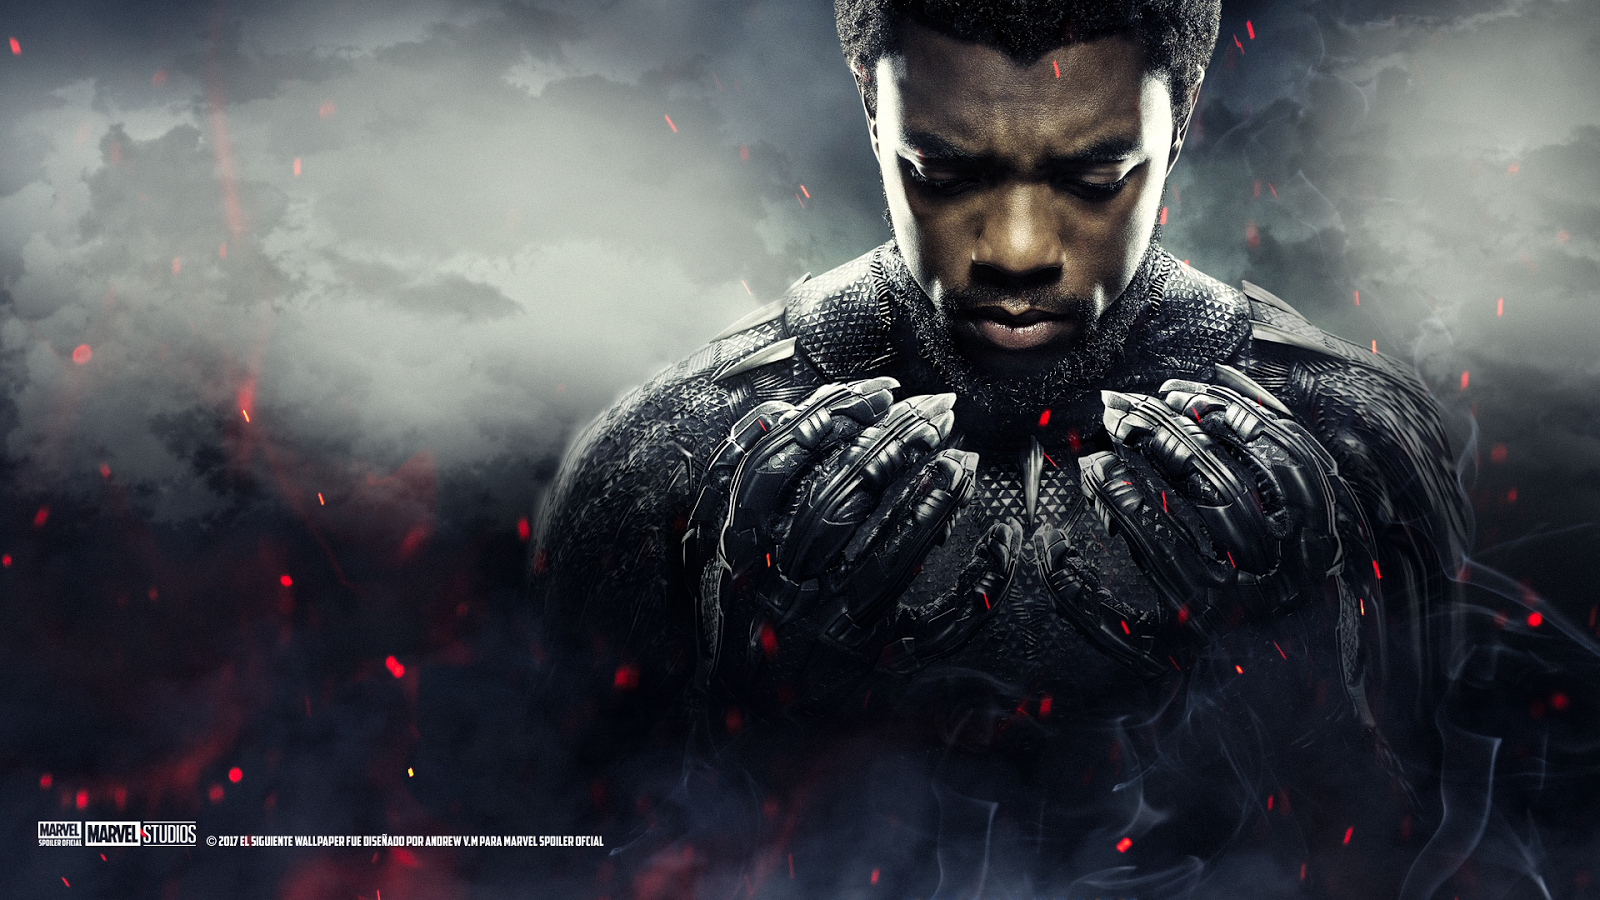 Marvel Black Panther Wallpaper Hd: 1600x900px Black Panther Marvel Wallpapers